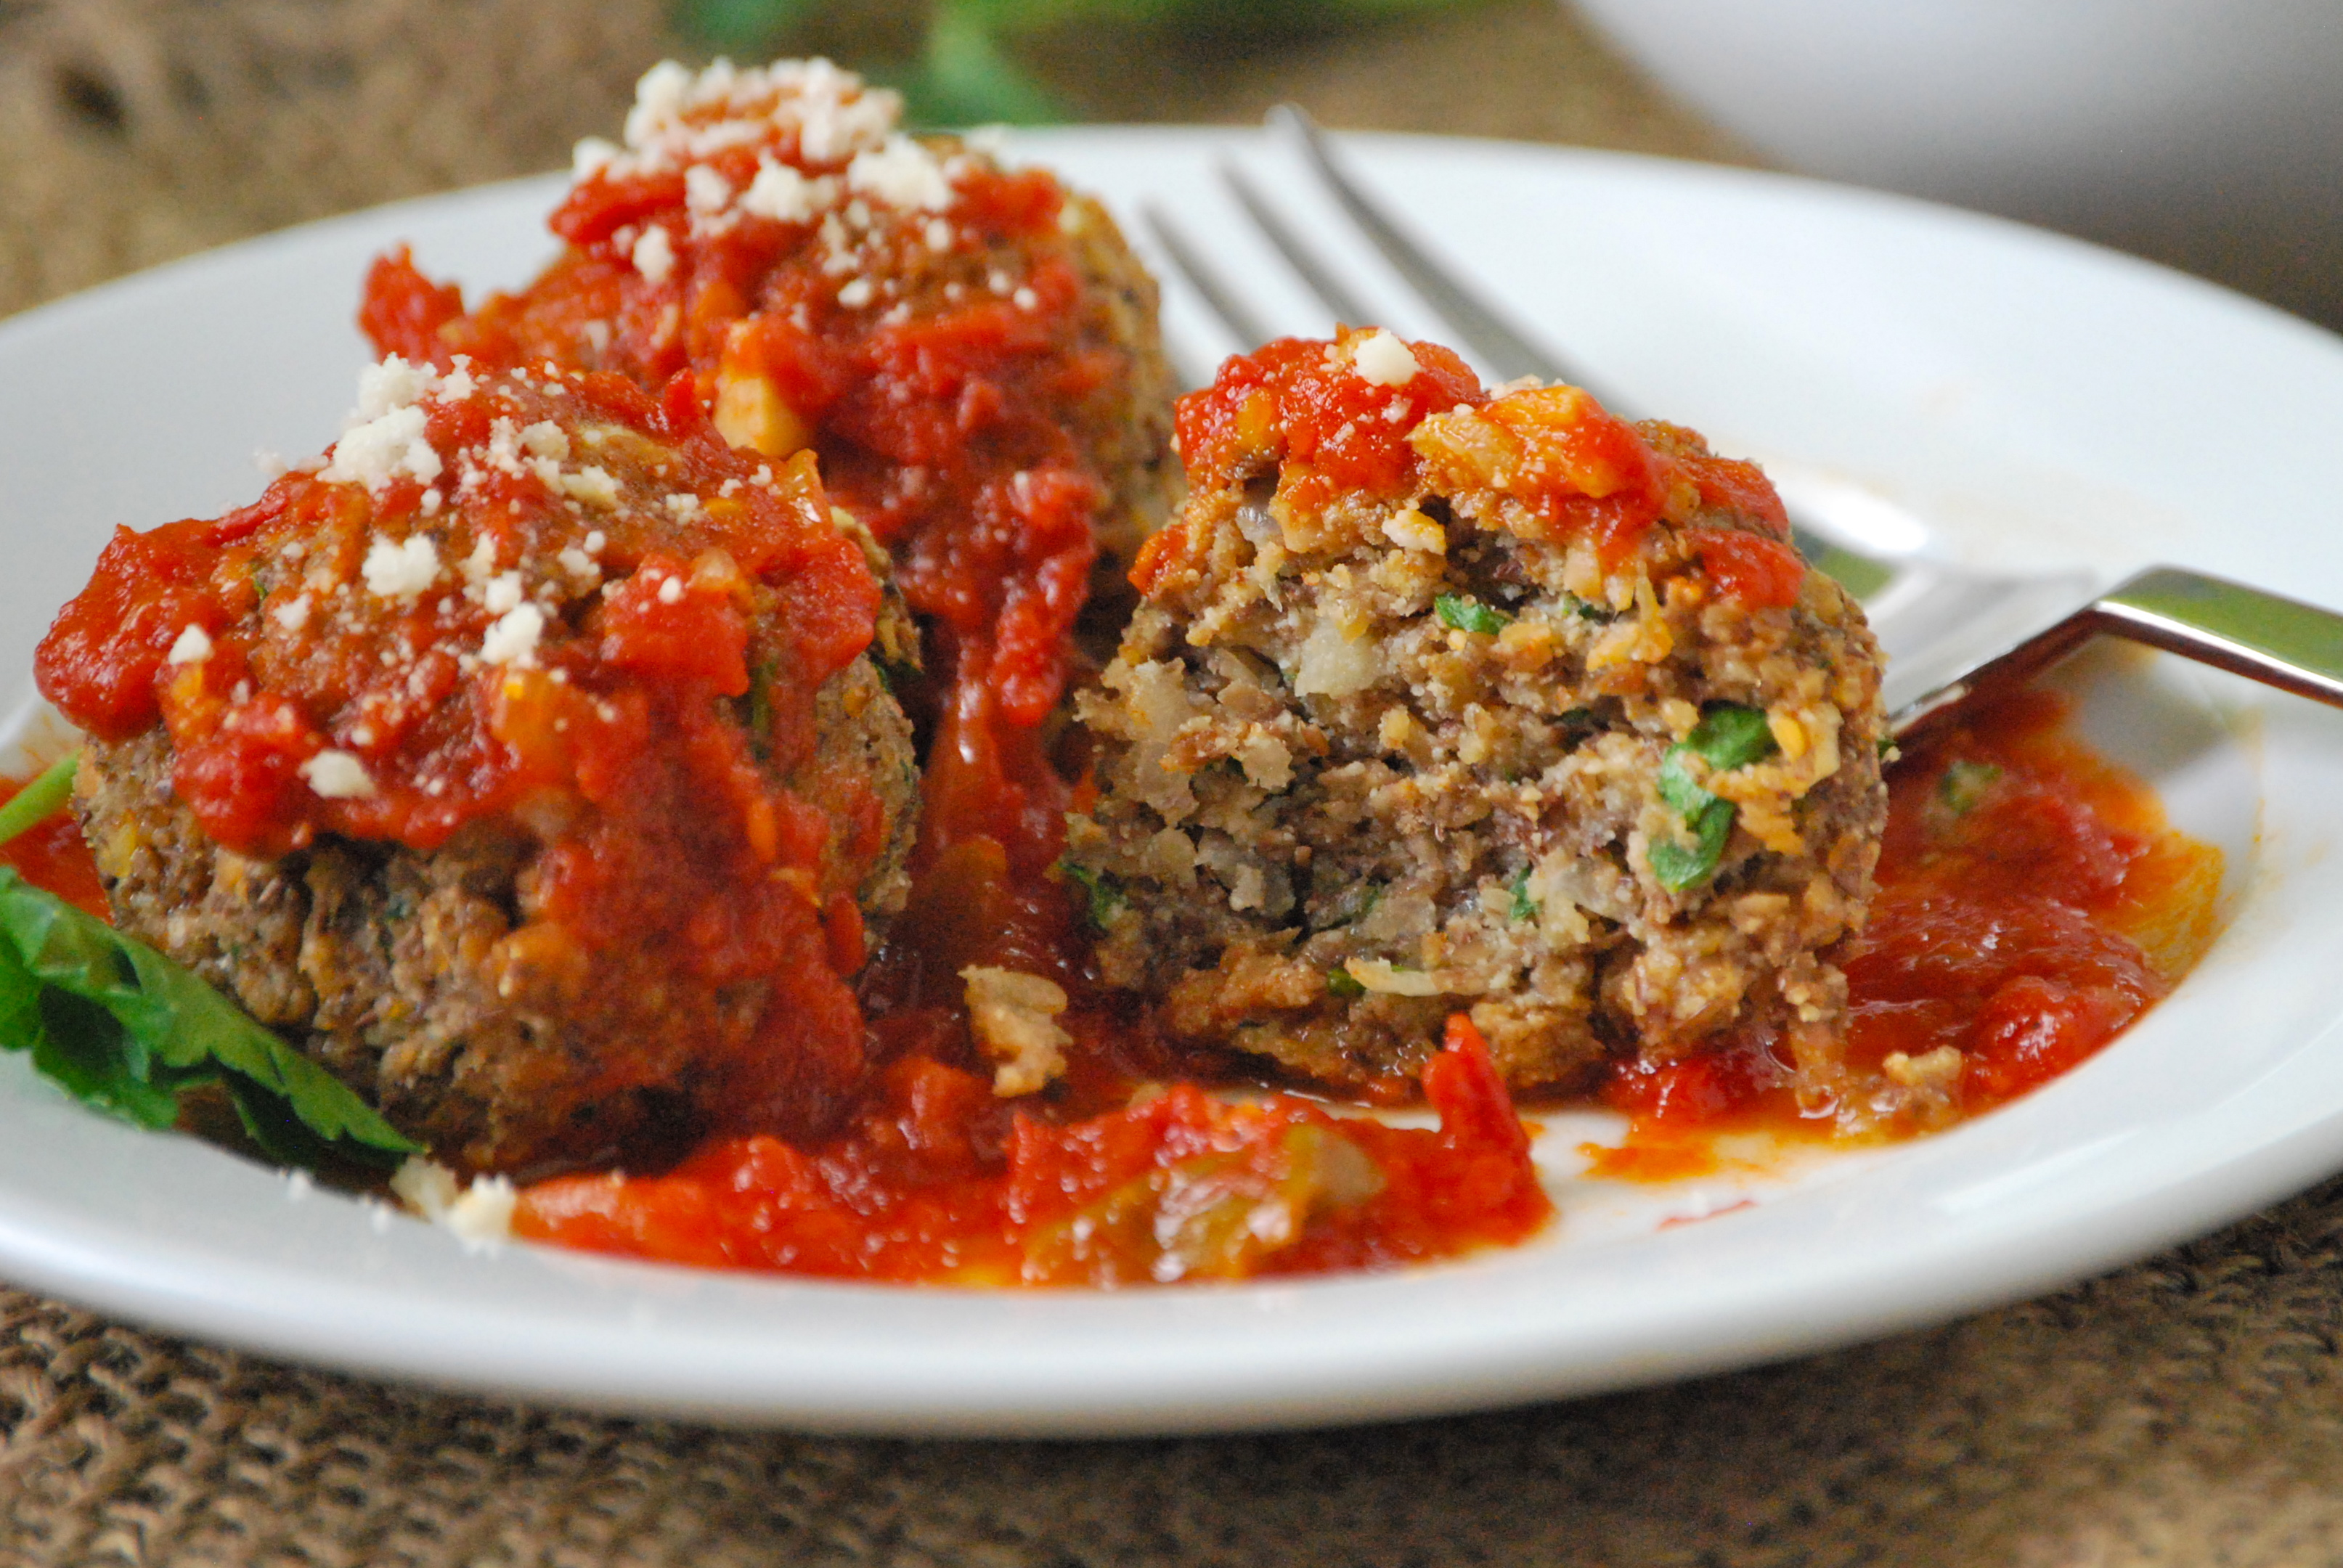 Meatballs made with ground beef, veal and pork, with garlic and Romano cheese. Finish cooking in your favorite marinara sauce I never knew how to make good meatballs /5(1K).